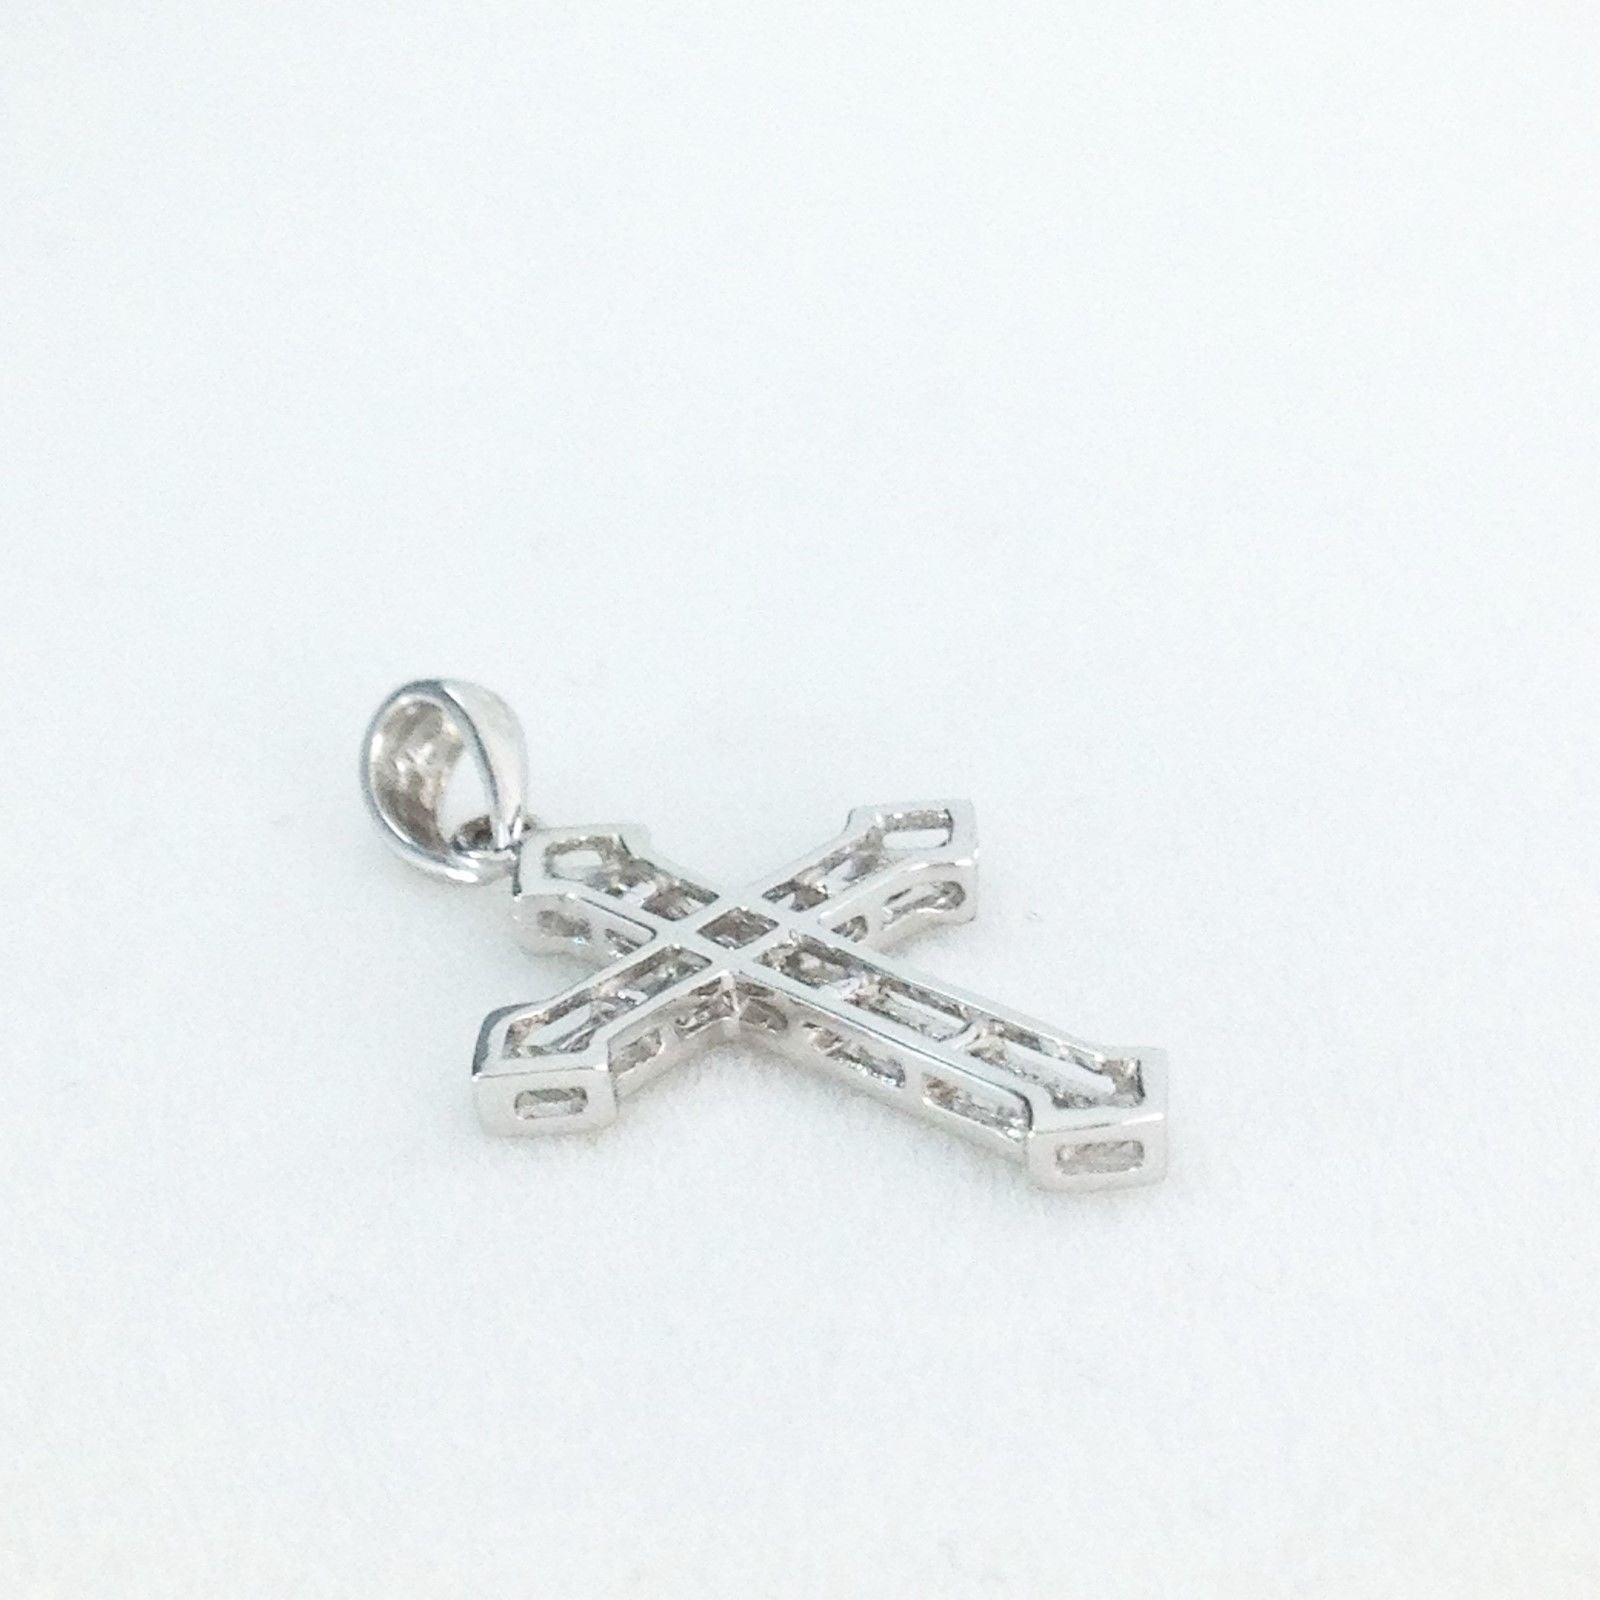 18k White Gold & Genuine Diamond Cross Pendant NWT $412